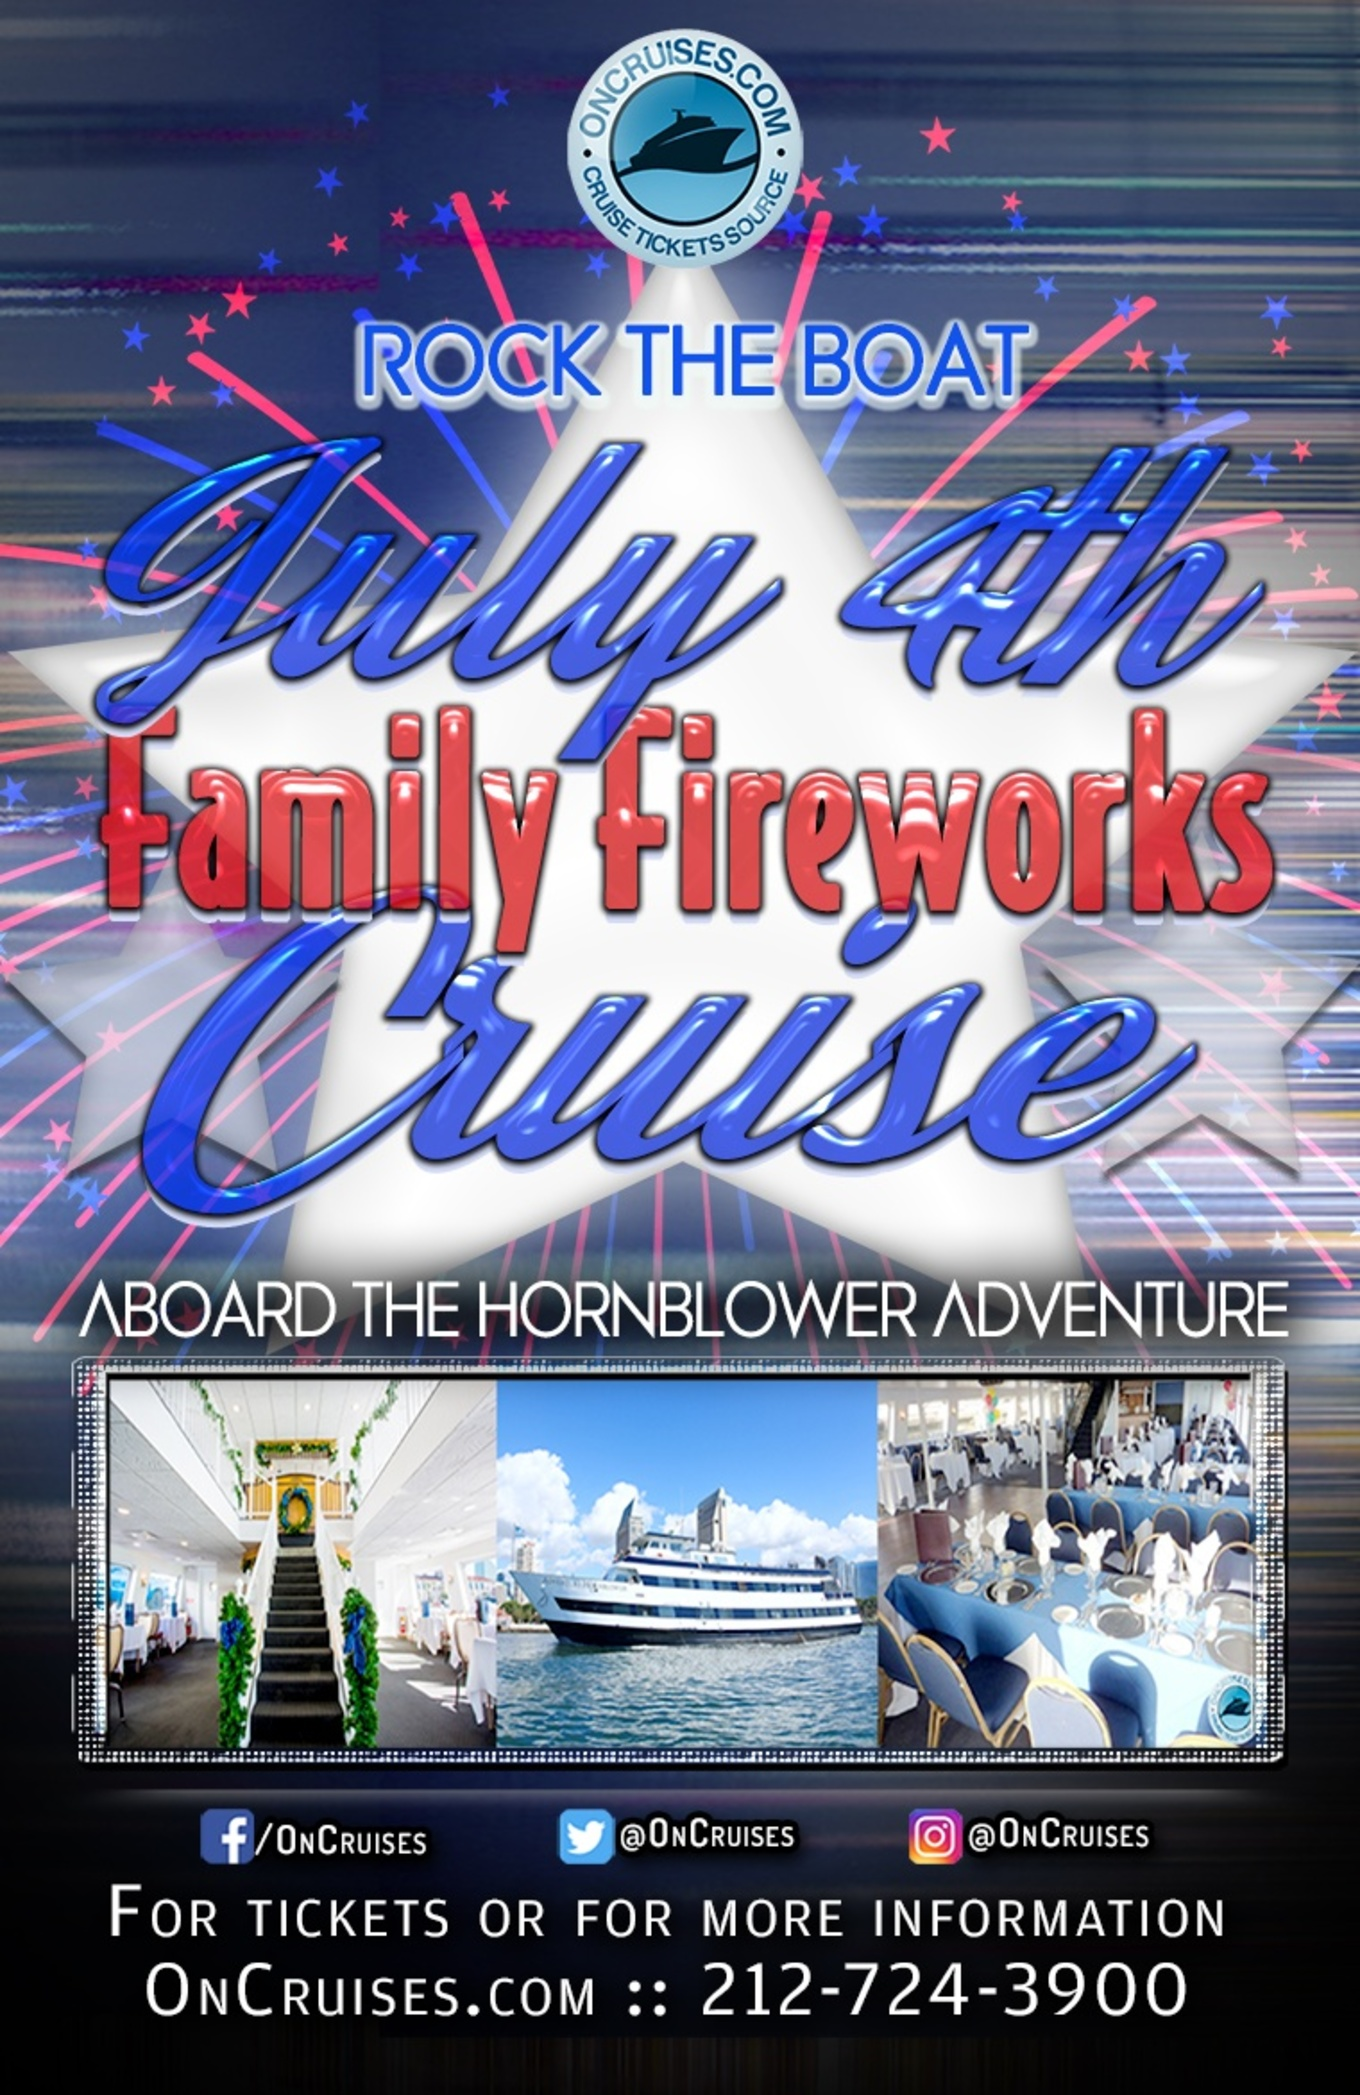 Rock The Boat July 4th Family Fireworks Cruise Aboard The